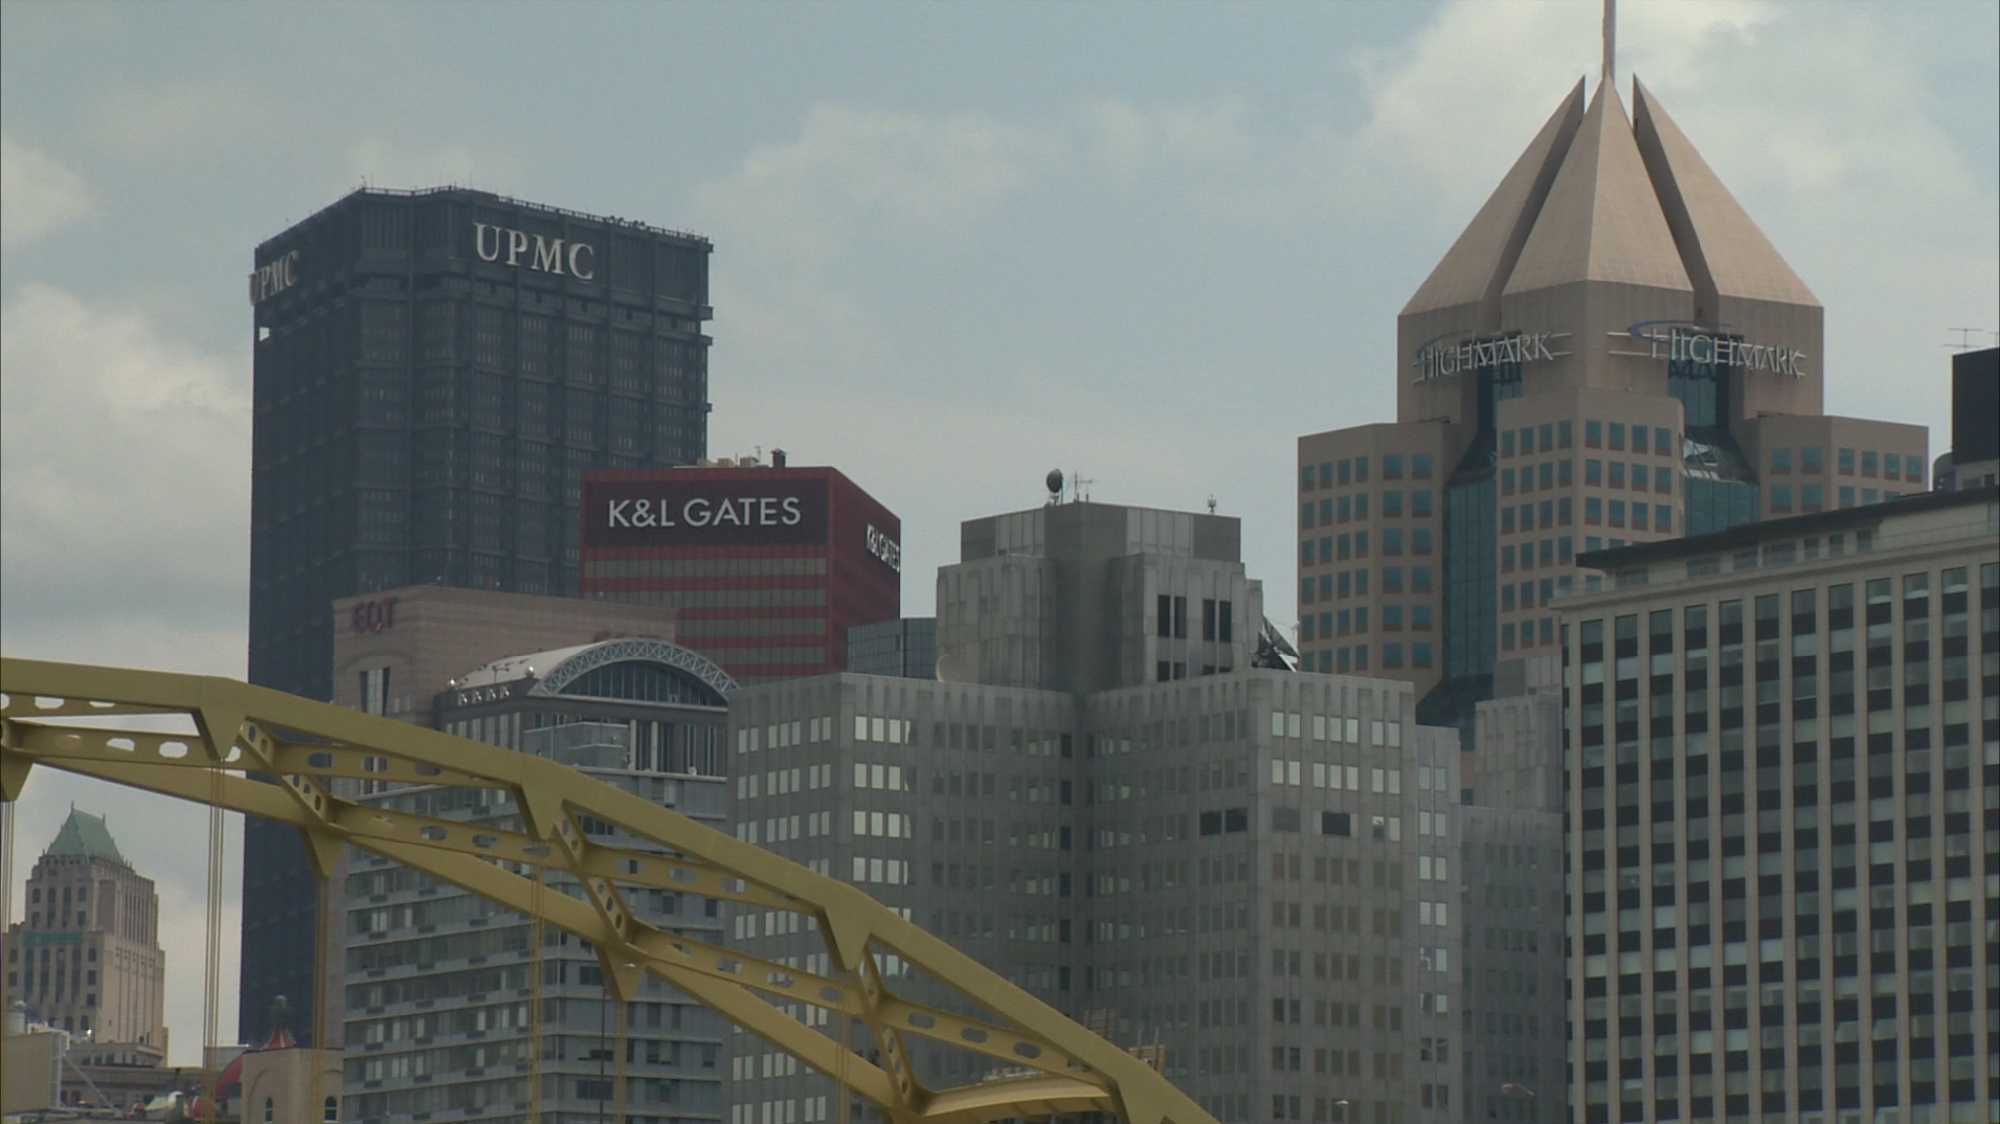 Downtown skyline, K&L Gates, UPMC, Highmark building